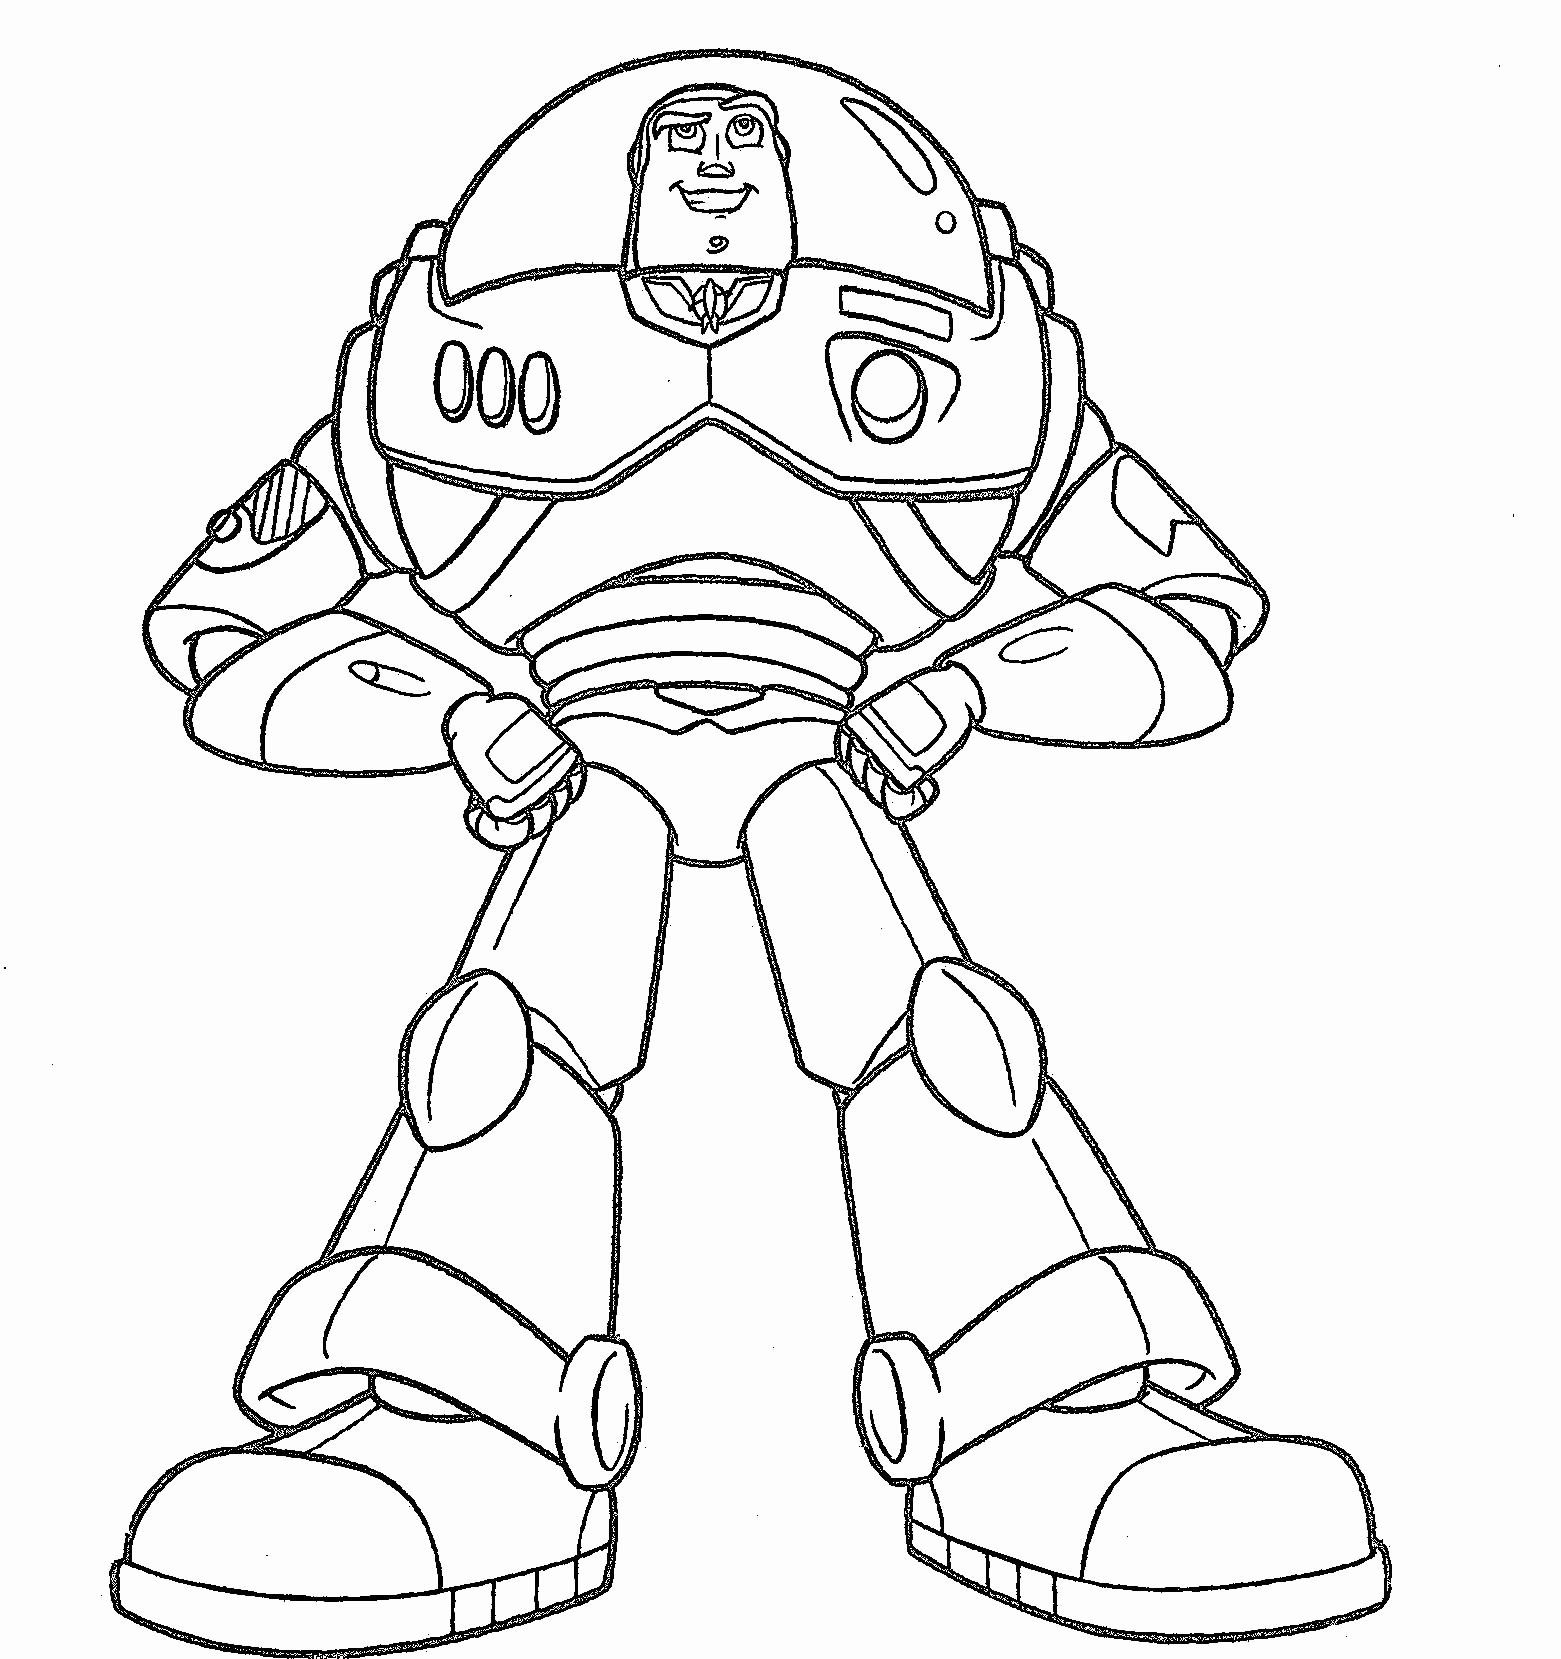 Buzz Lightyear Coloring Page Fresh Buzz Lightyear Coloring Pages Coloringsuite Toy Story Coloring Pages Cool Coloring Pages Cartoon Coloring Pages